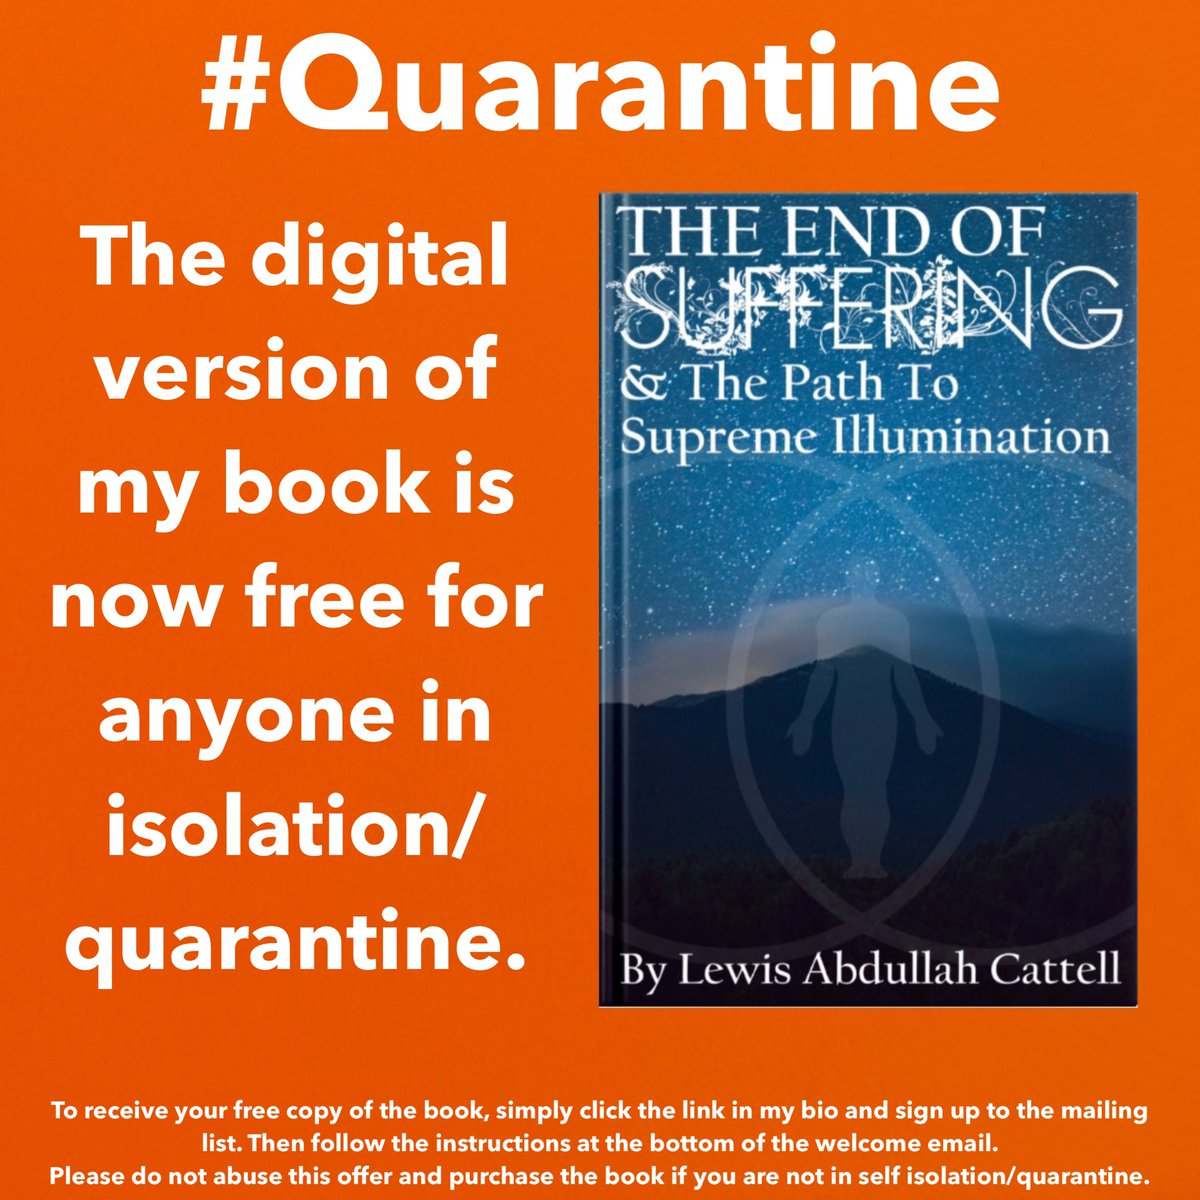 @TracyTTraffic You can read my book for free if you are in quarantine (link in bio)